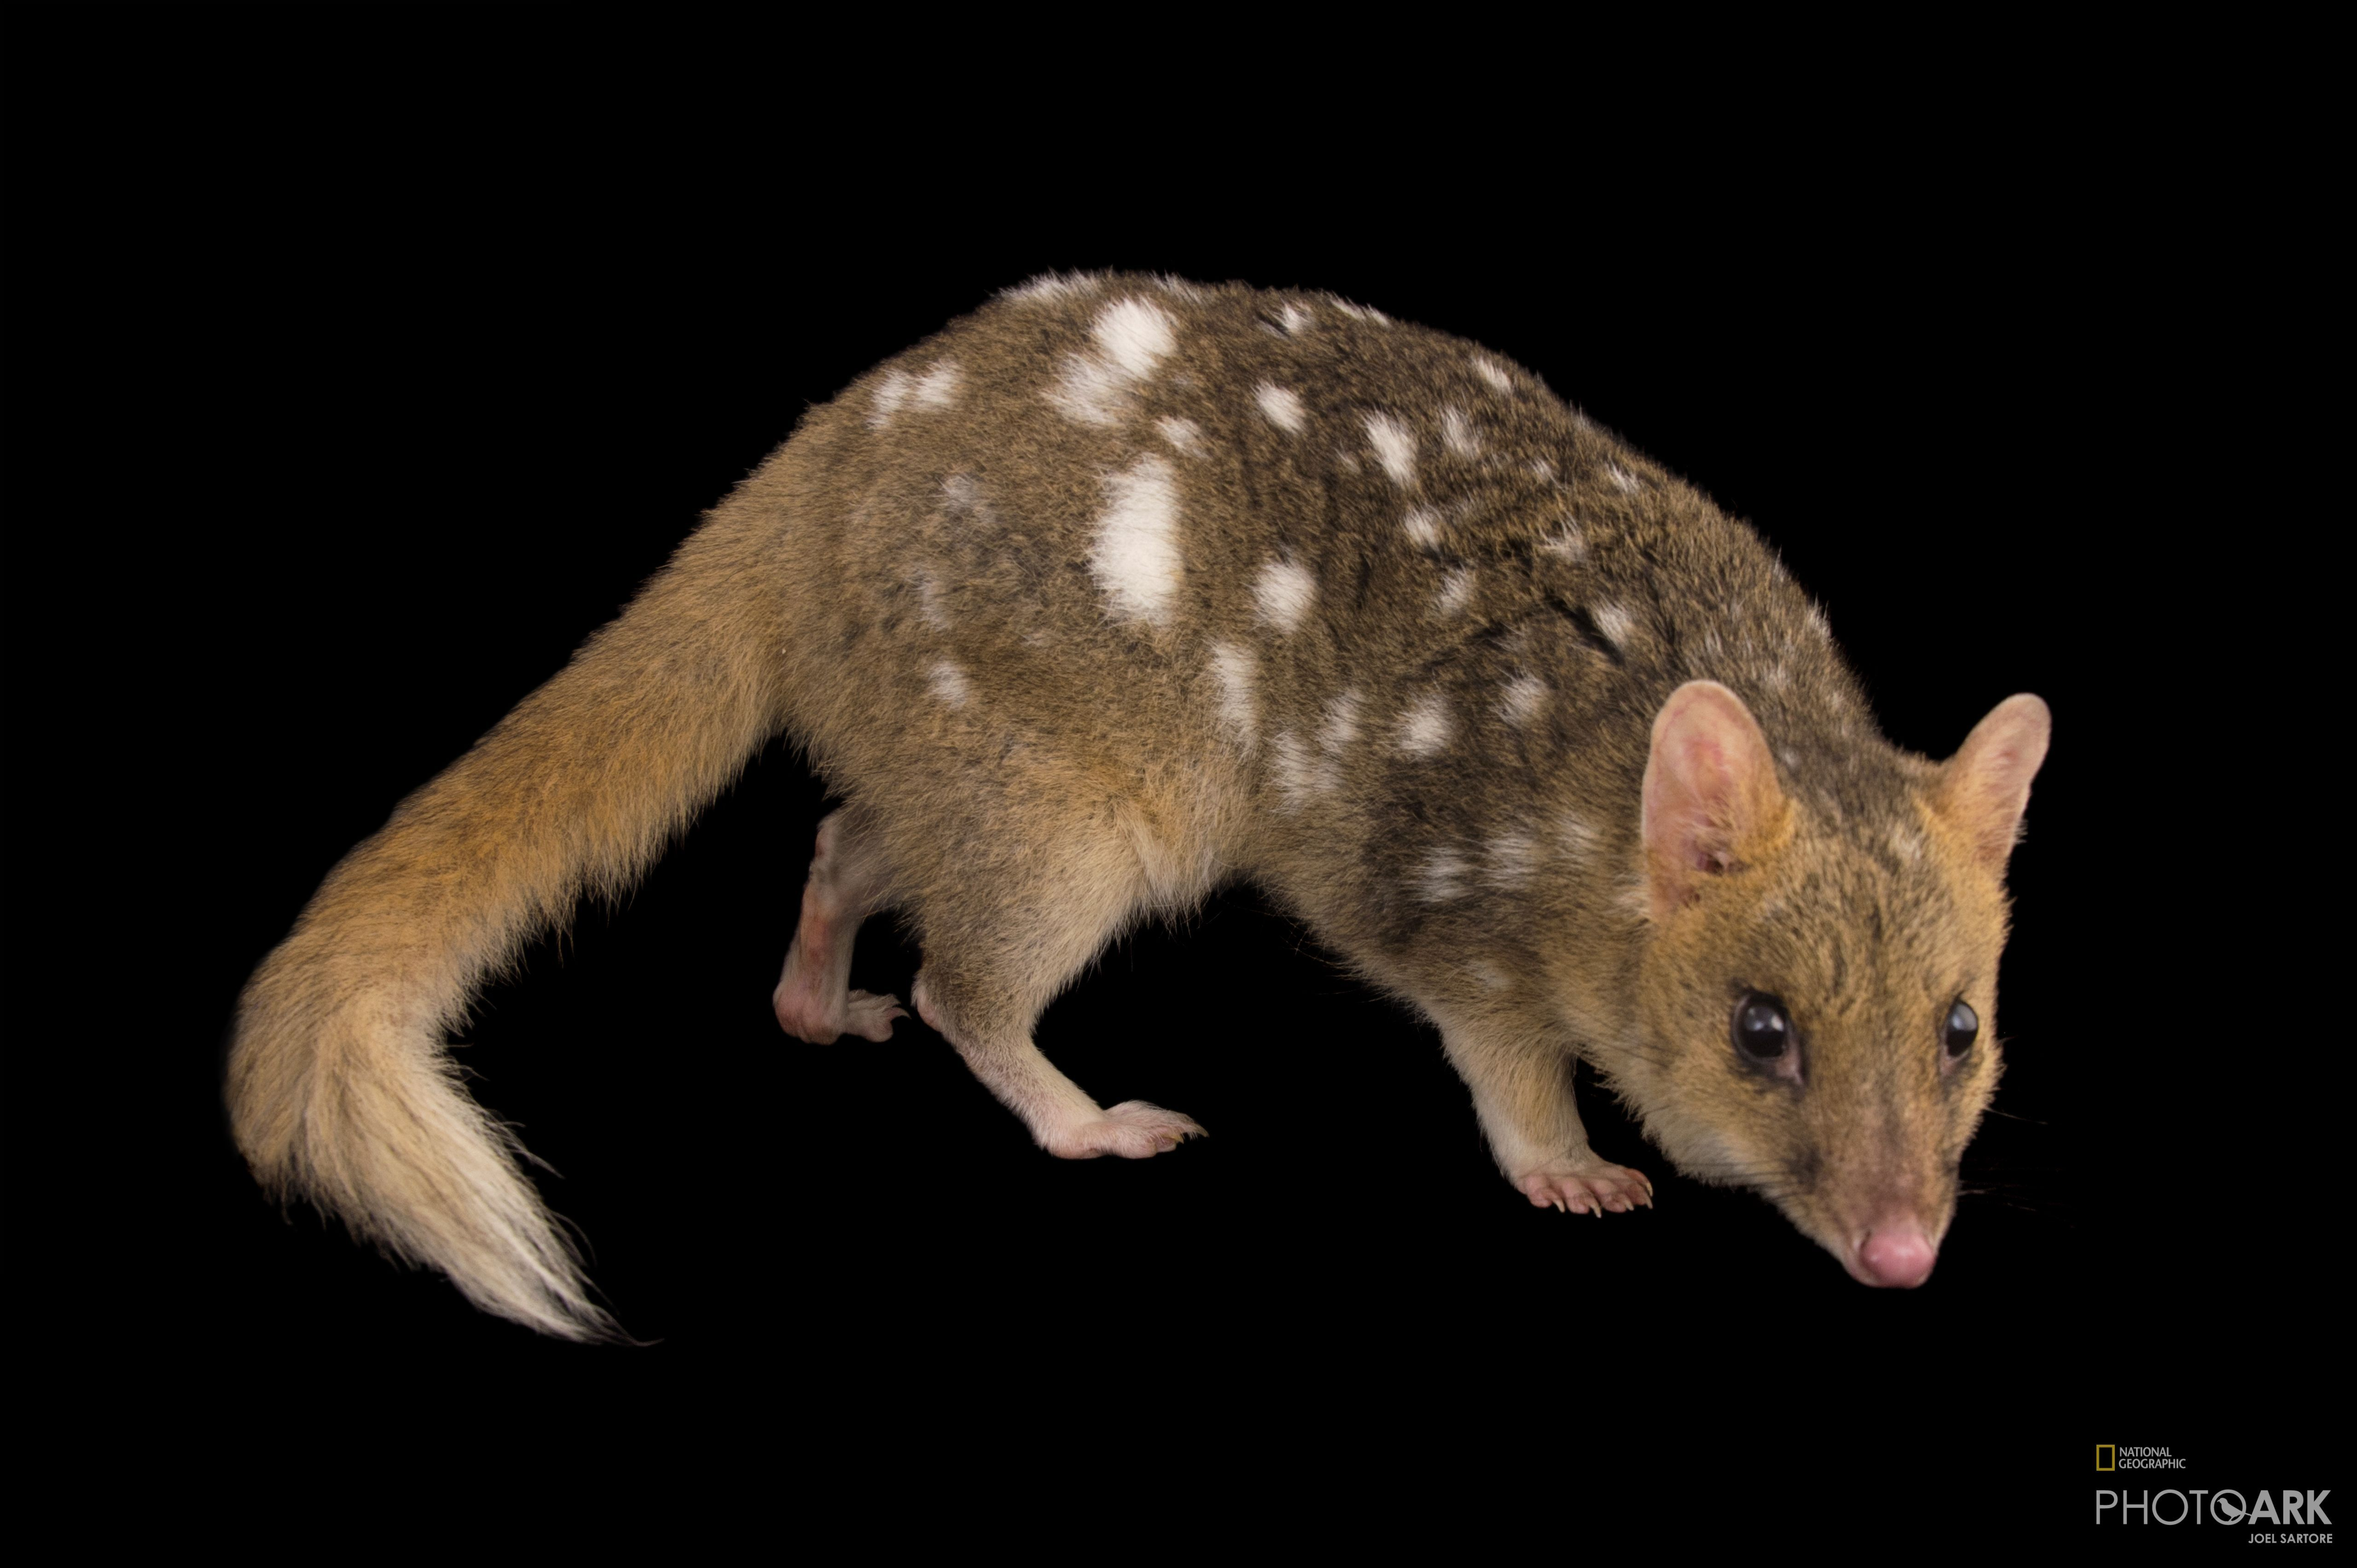 Photo Ark Home Federally Endangered Eastern Quoll